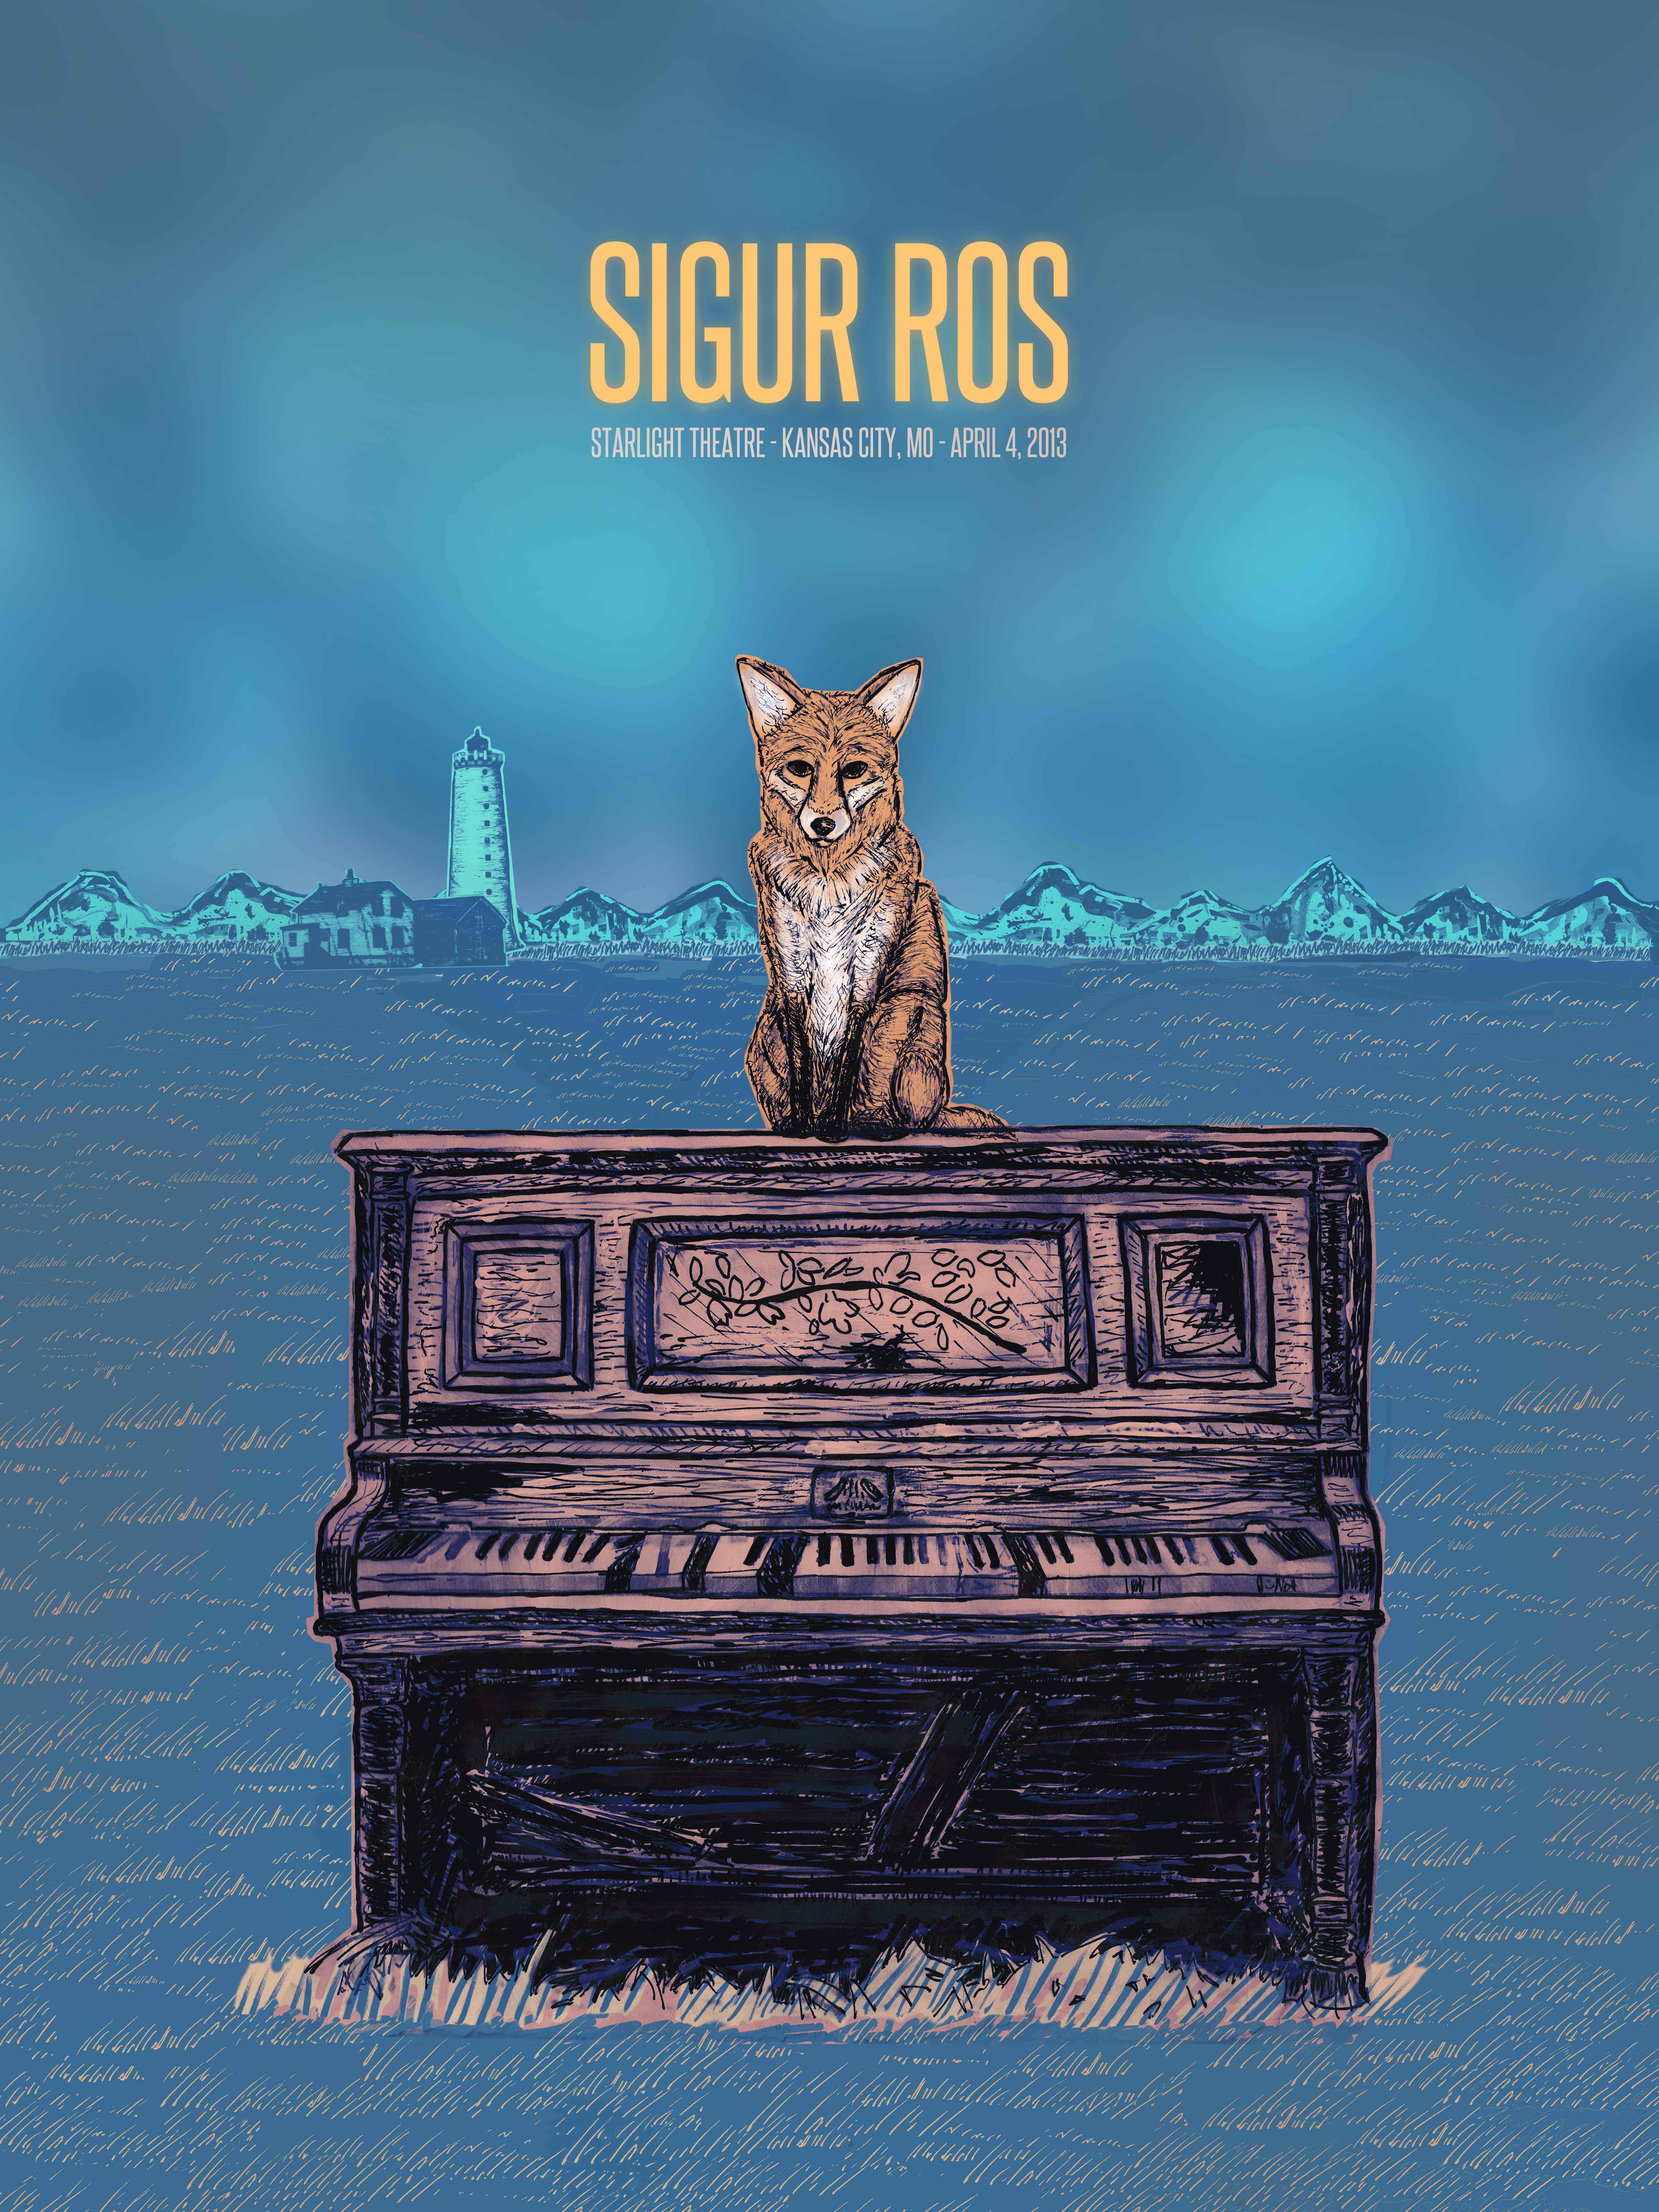 Sigur Ros Gig Poster  - image 11 - student project